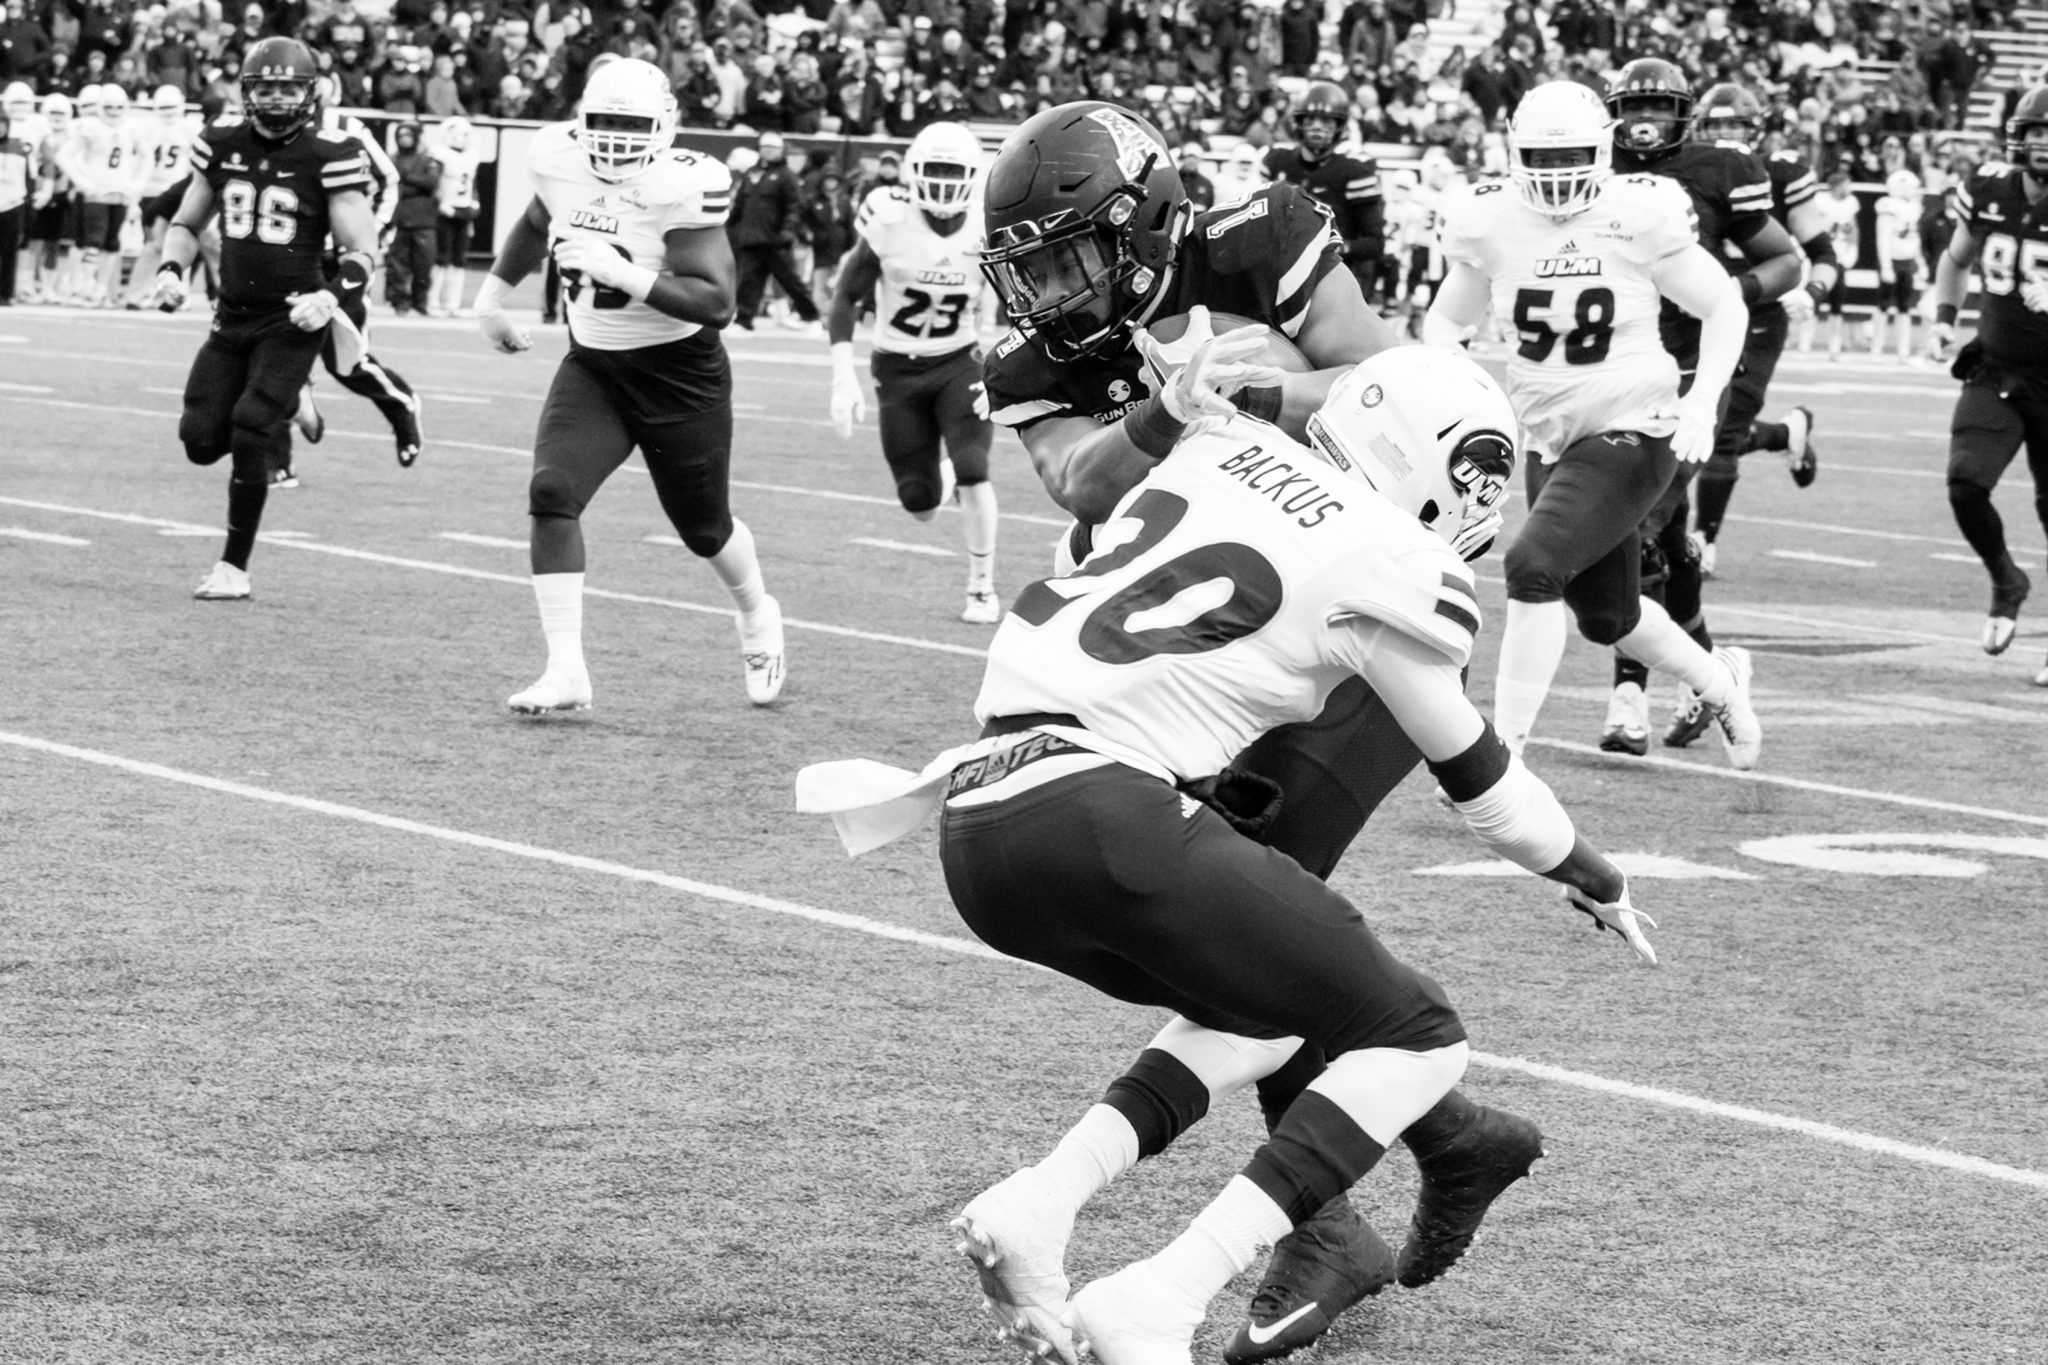 Senior running back Marcus Cox, attempts to run the ball down the field and gets tackled by the opposing team during the game against UL Monroe.